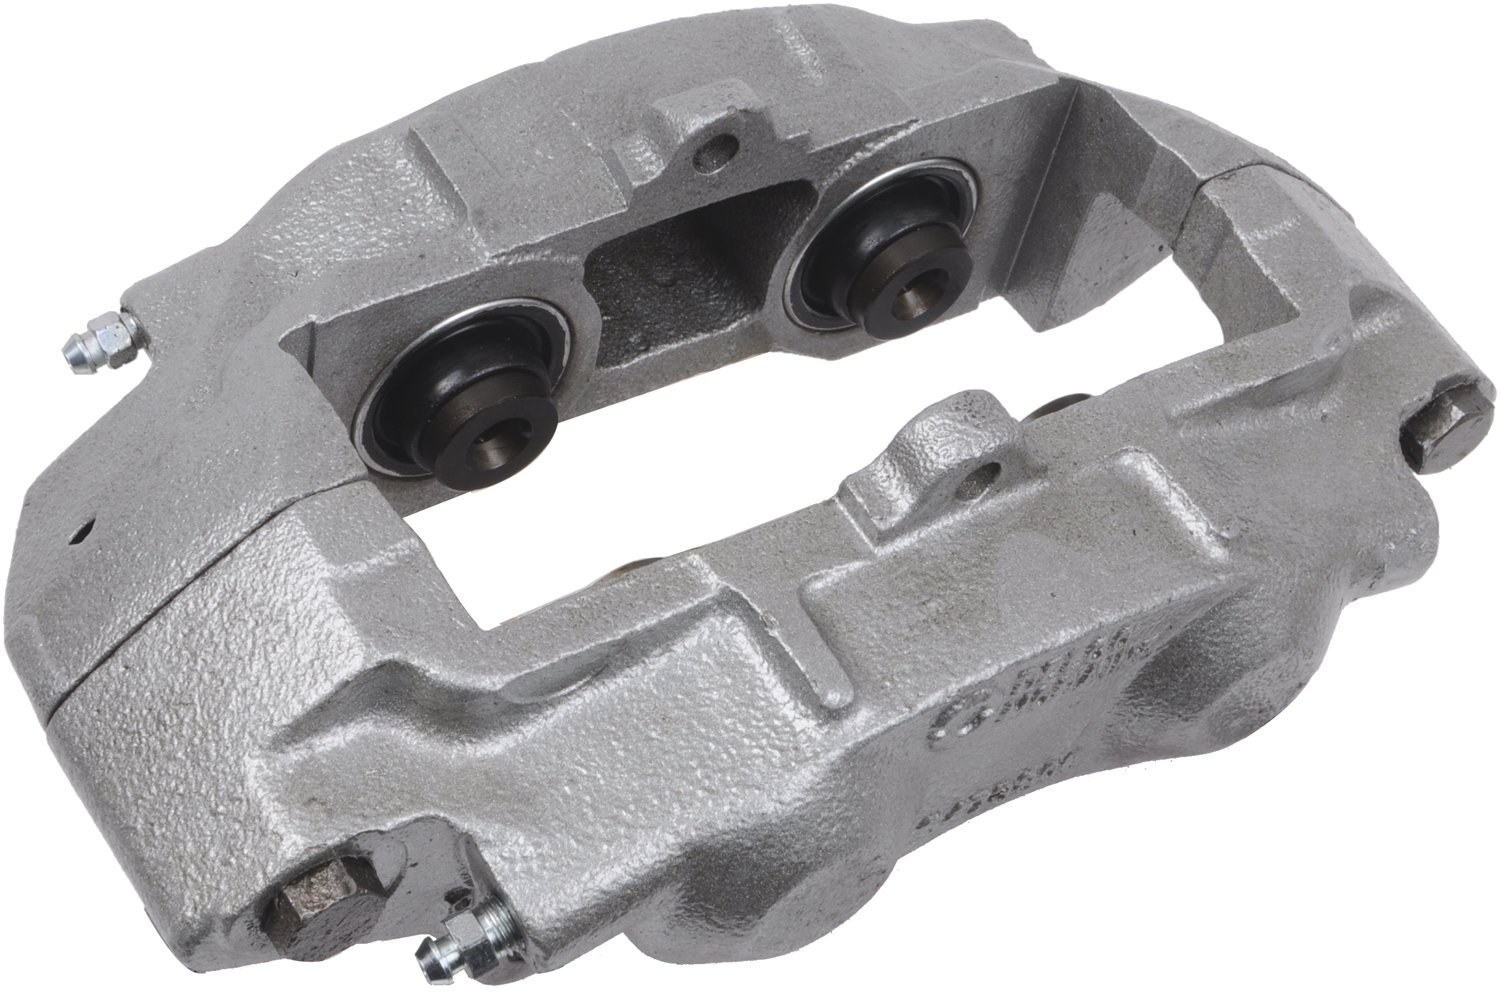 1978 Chevrolet Corvette Disc Brake Caliper System Related Parts Calipers Stainless Steel Sleeved A1 18 P7019